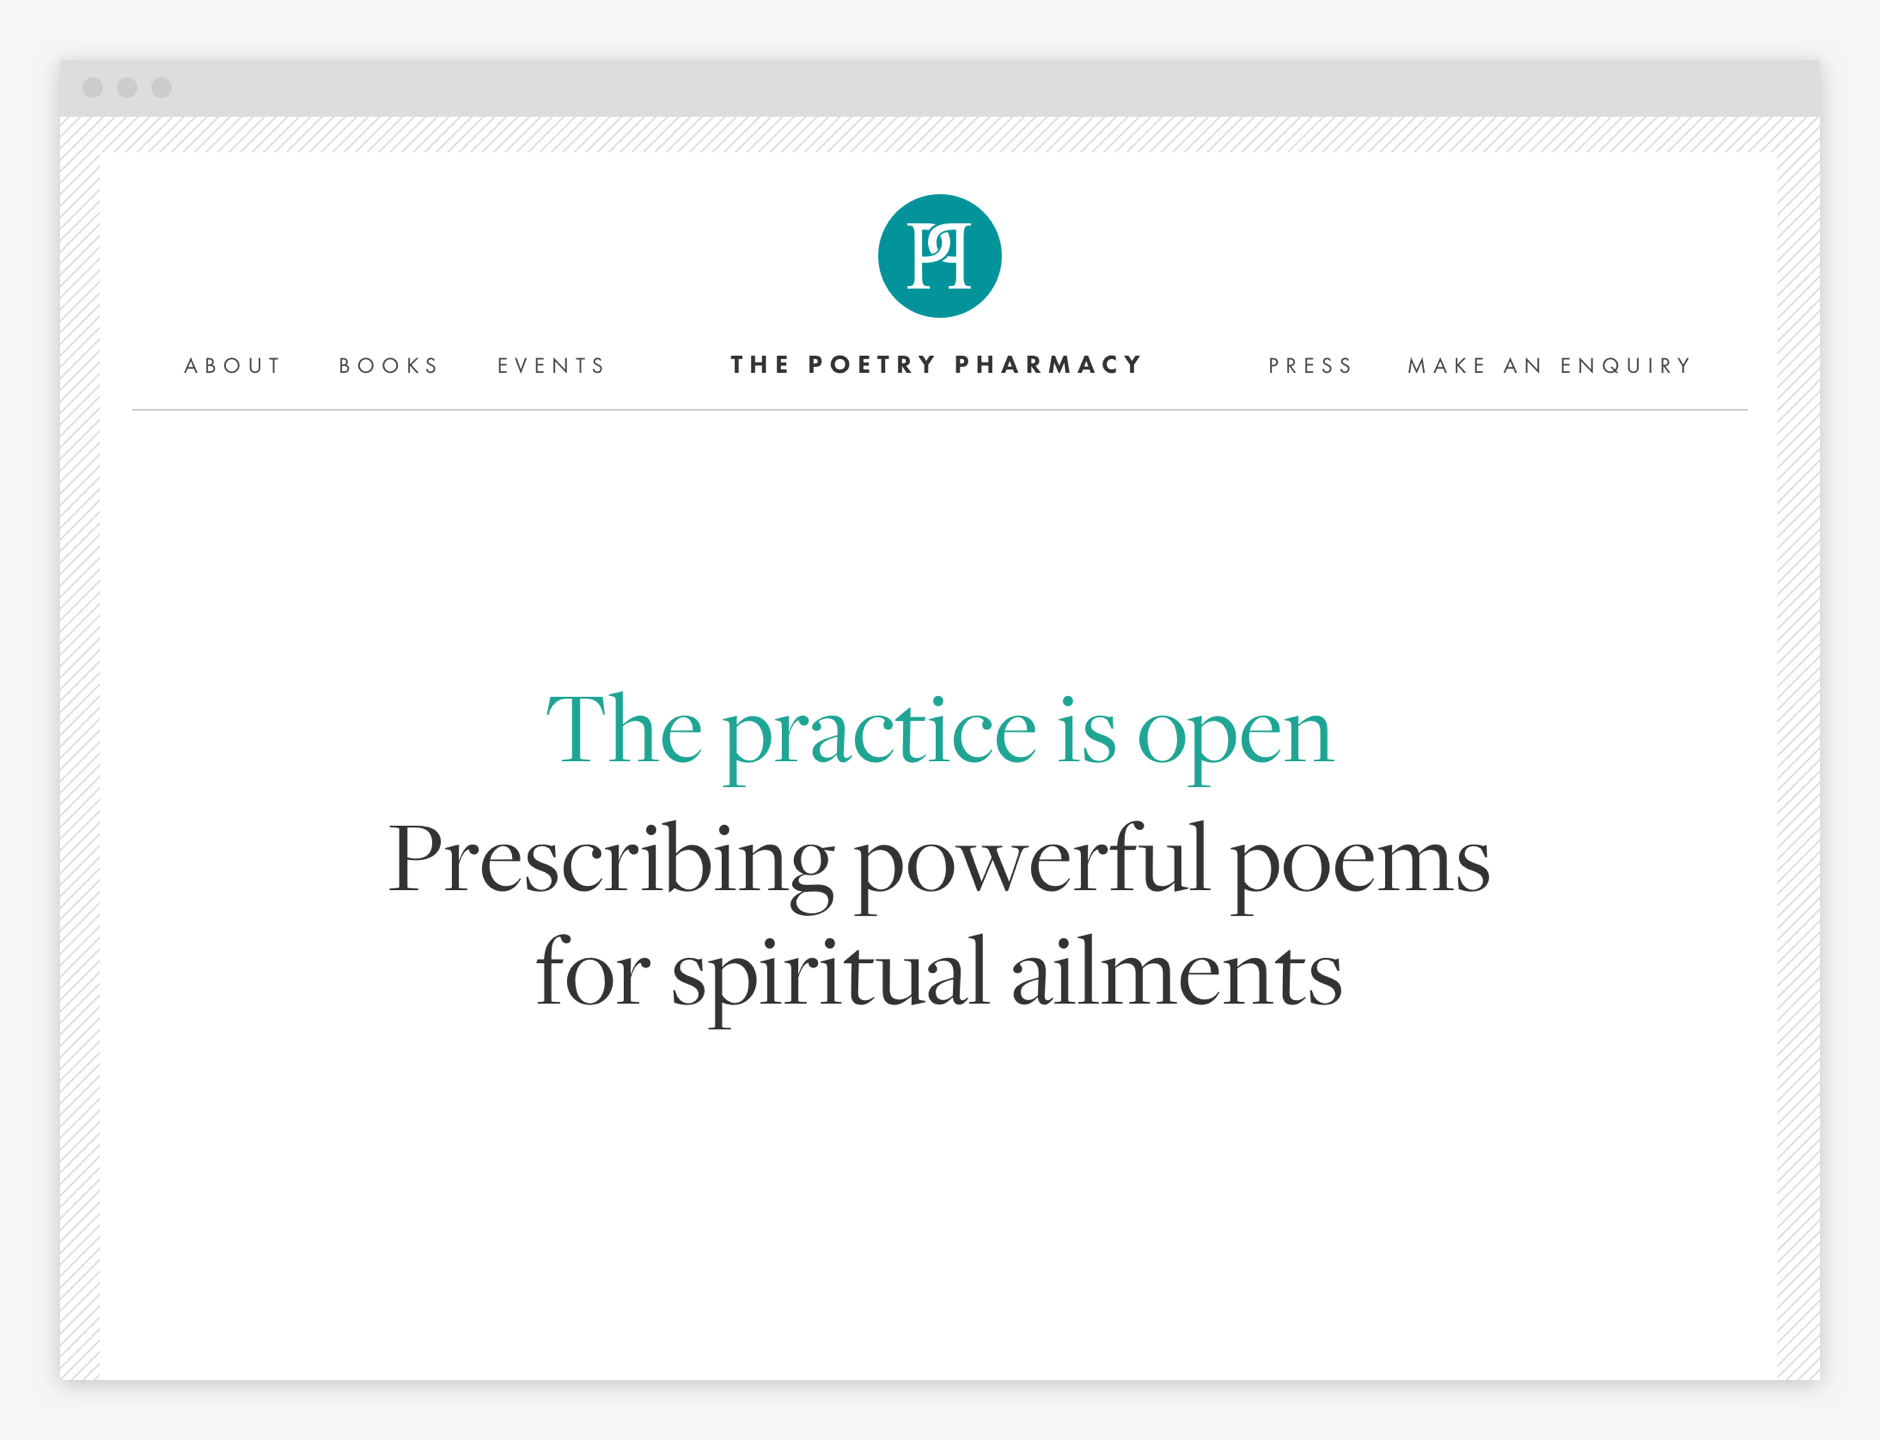 Homepage: The practice is now open. Prescribing powerful poems for spiritual ailments.